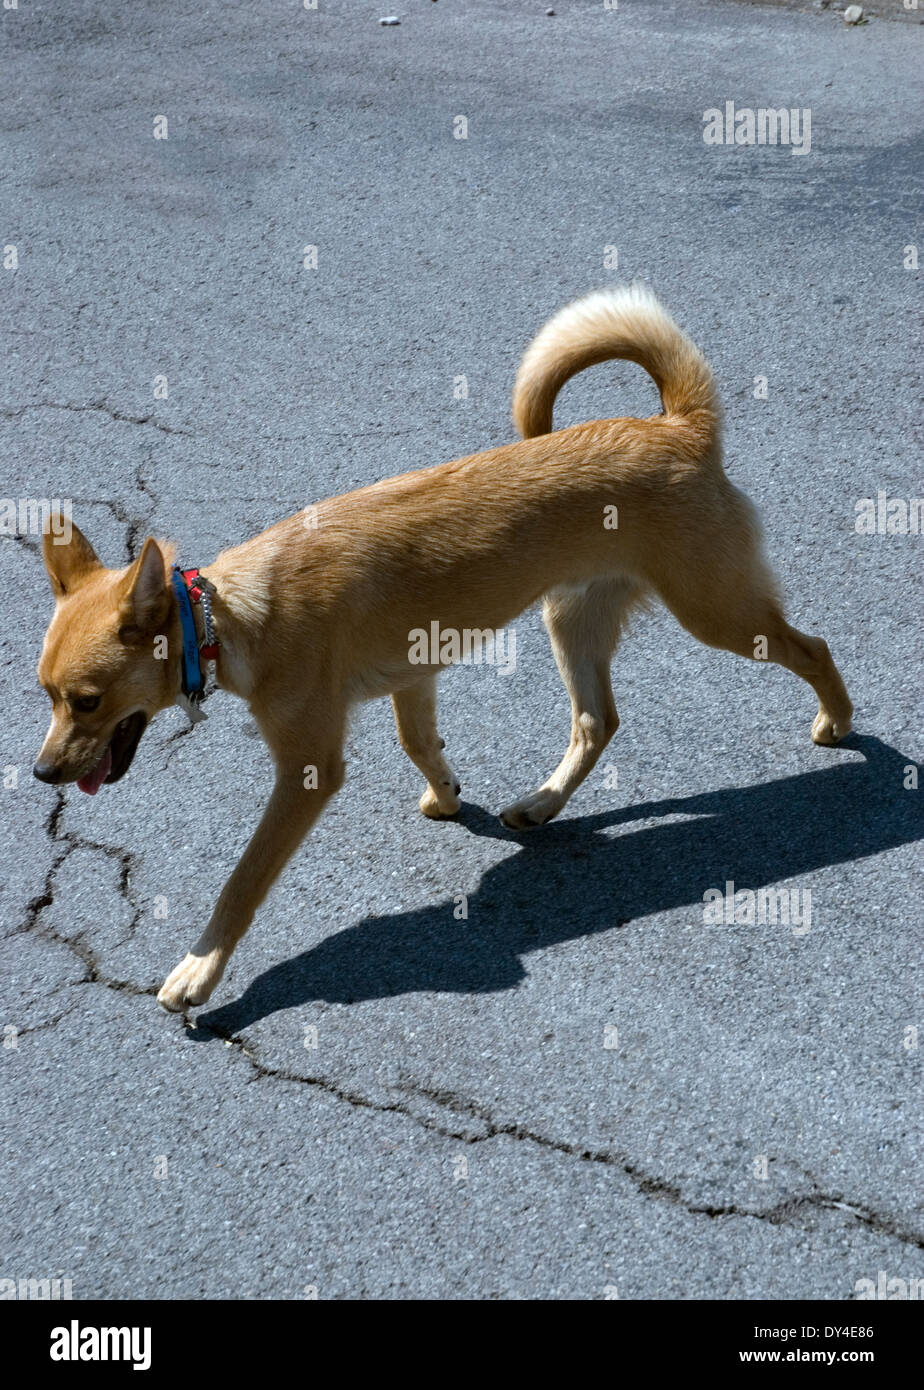 Walking brown rescue dog with shadow on pavement - Stock Image